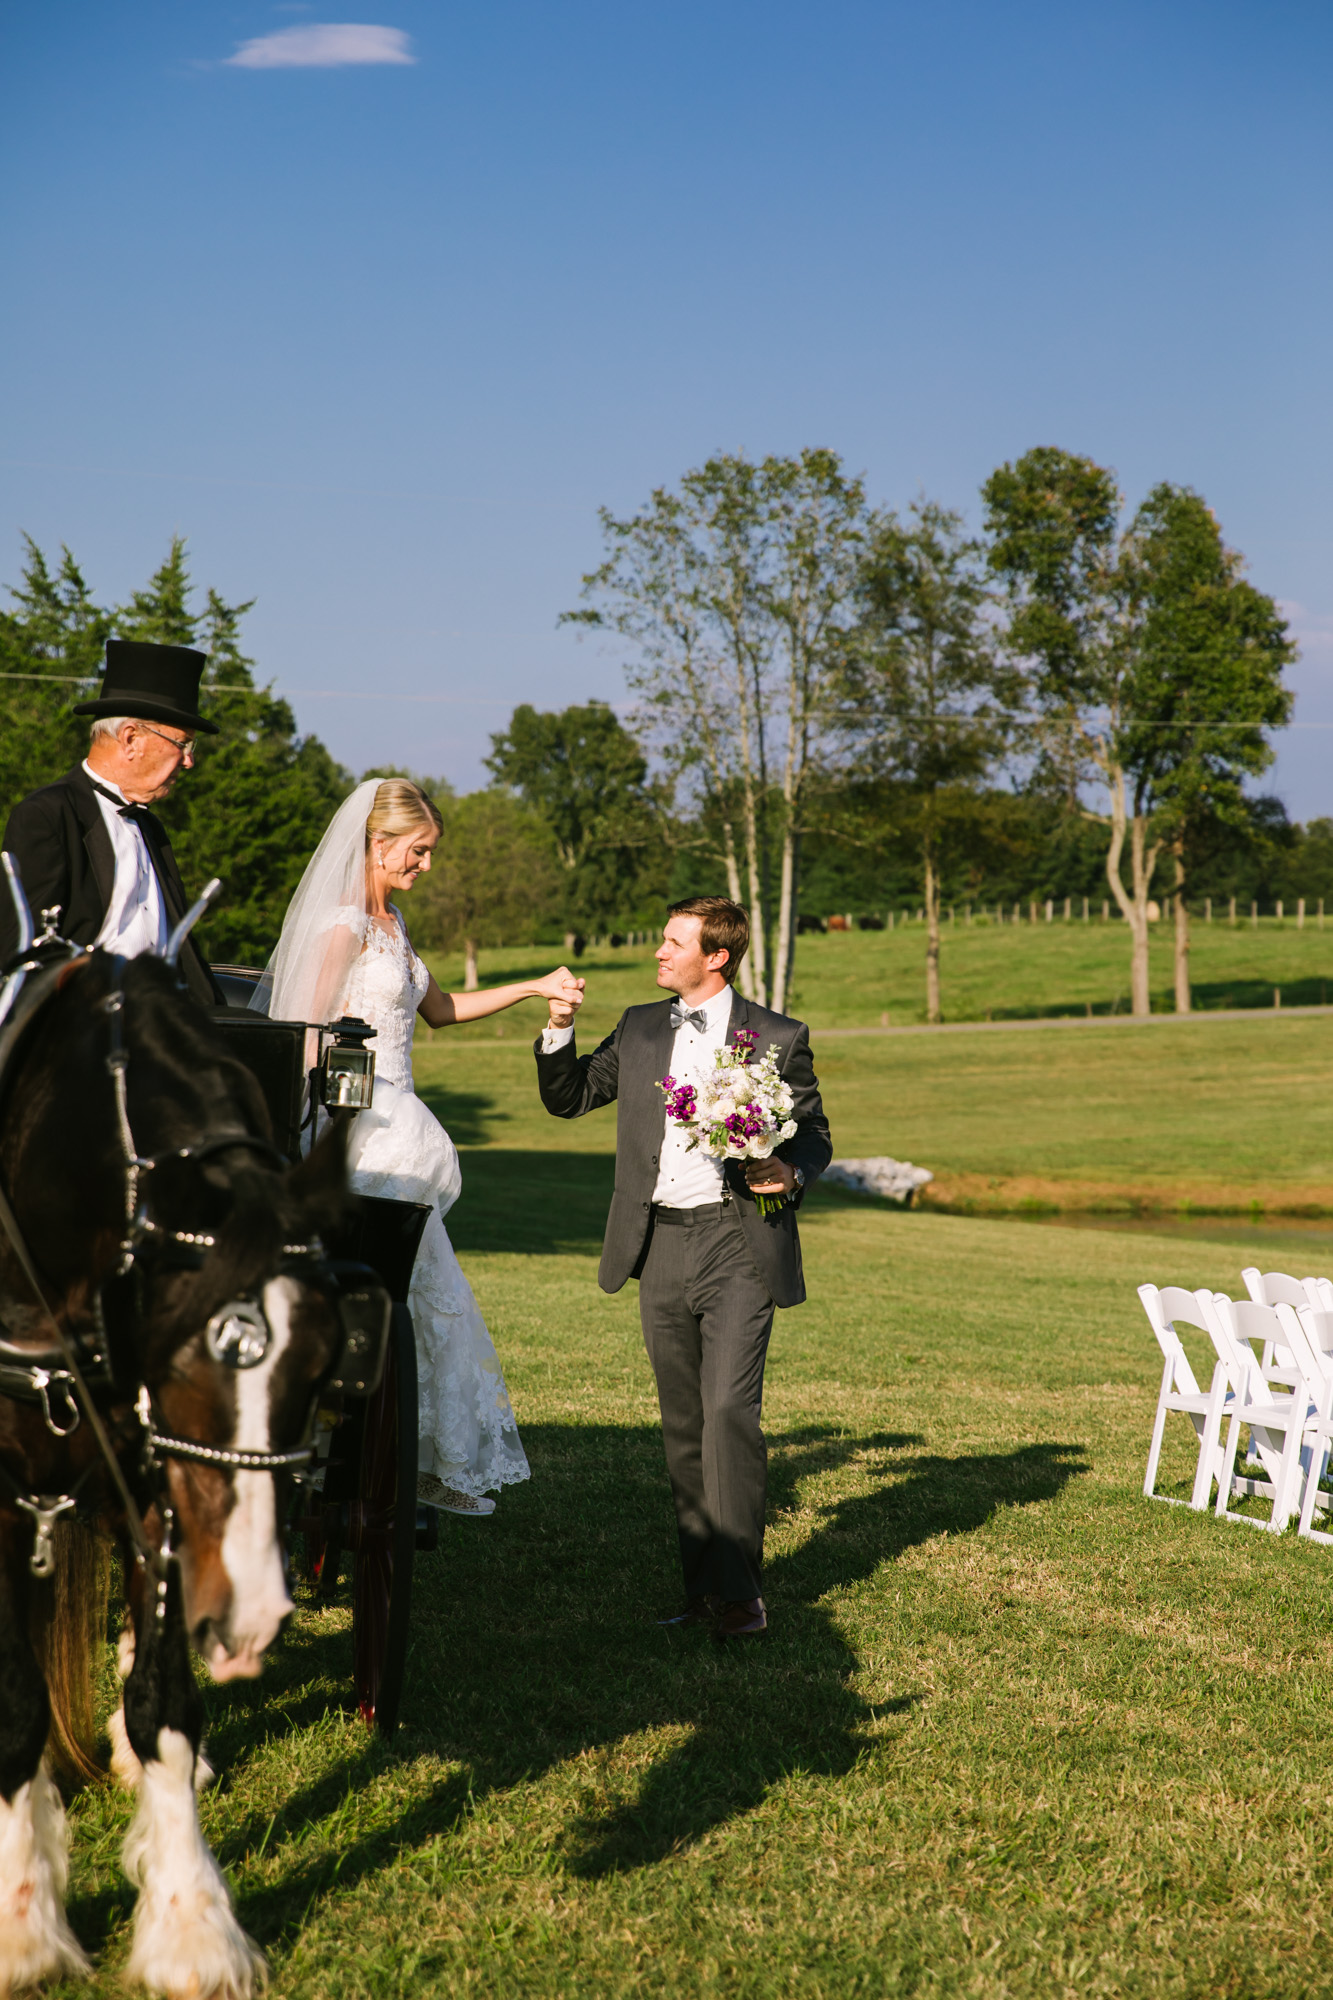 Waynesville, NC Wedding Photography | Groom Helps Bride off back of Horse Carriage